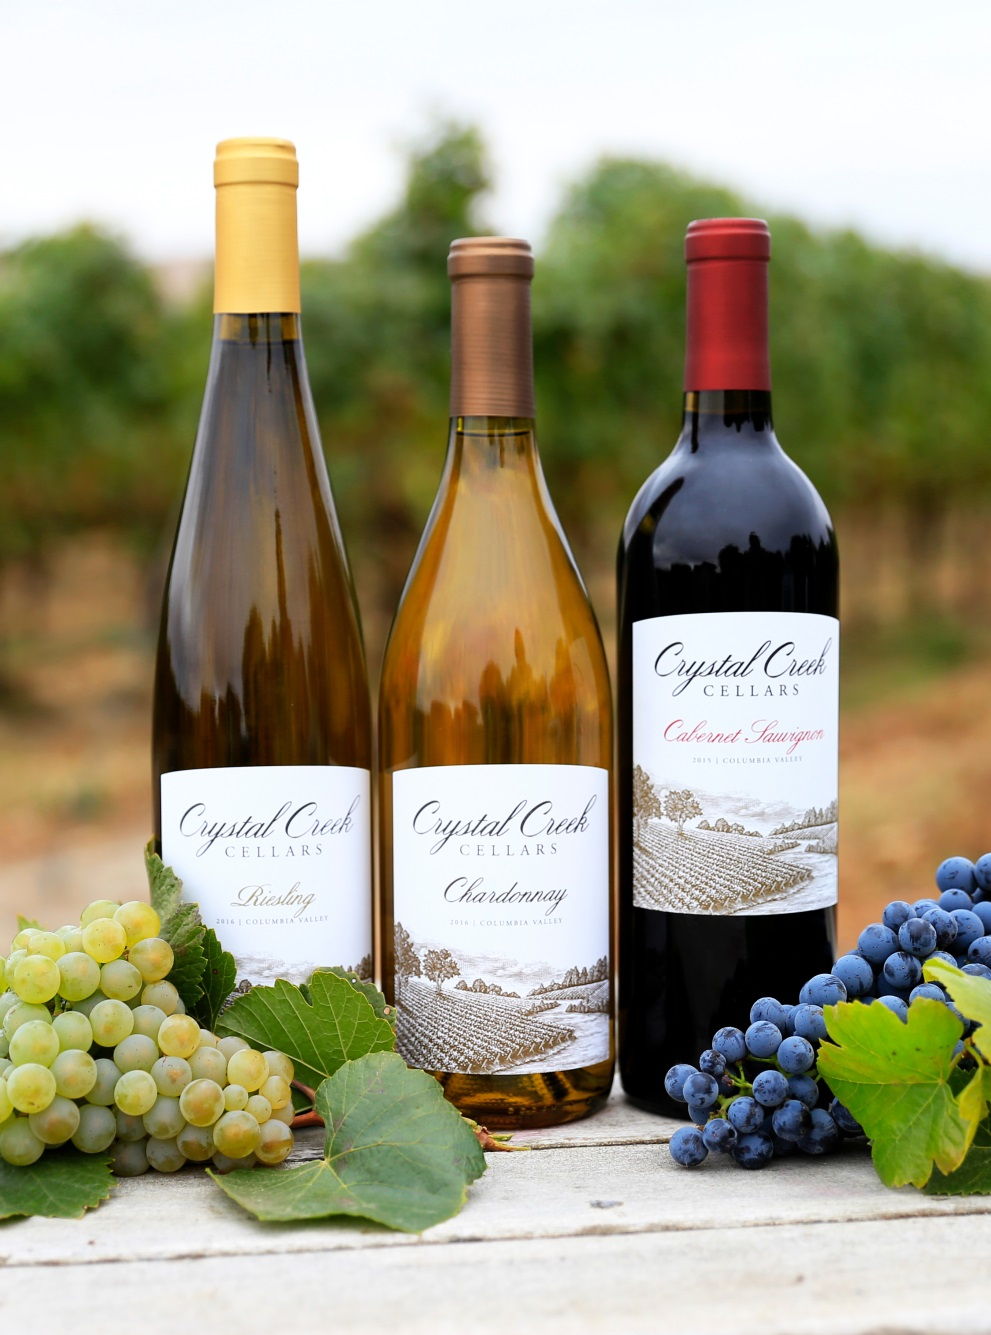 Three varieties of Crystal Creek Cellars beverages including Risling, Chardonnay and Cabernet.